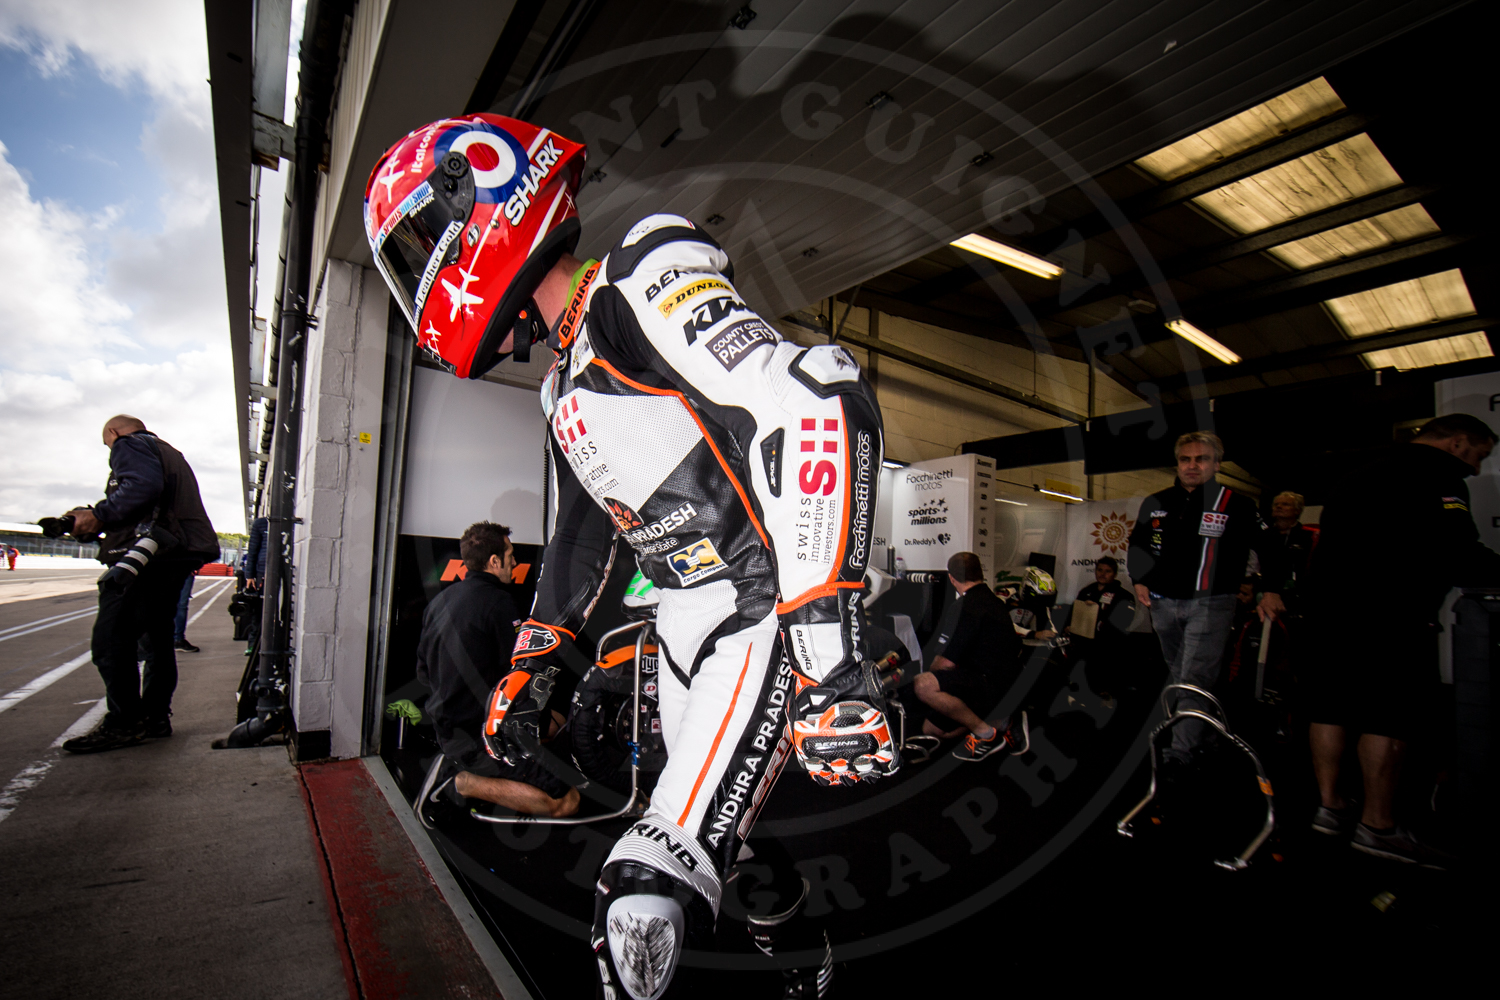 SAM LOWES #22